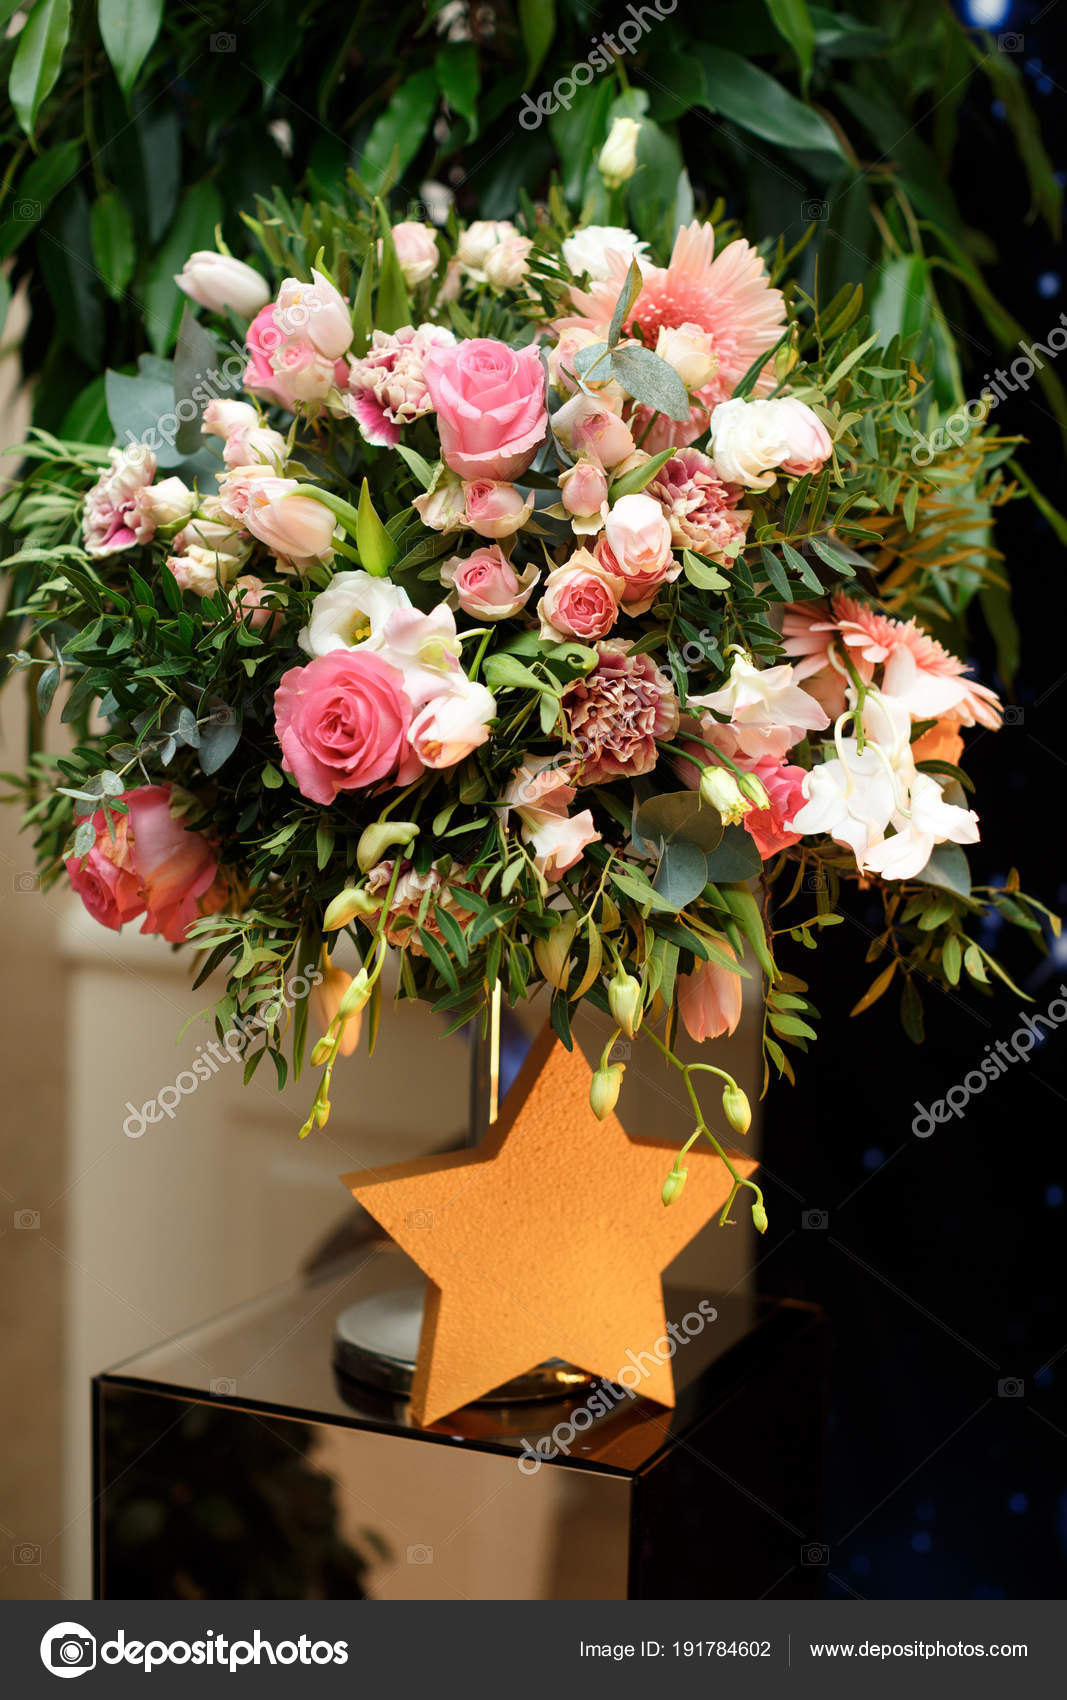 Bouquet beautiful flowers birthday party stock photo vaksmanv101 bouquet beautiful flowers birthday party stock photo izmirmasajfo